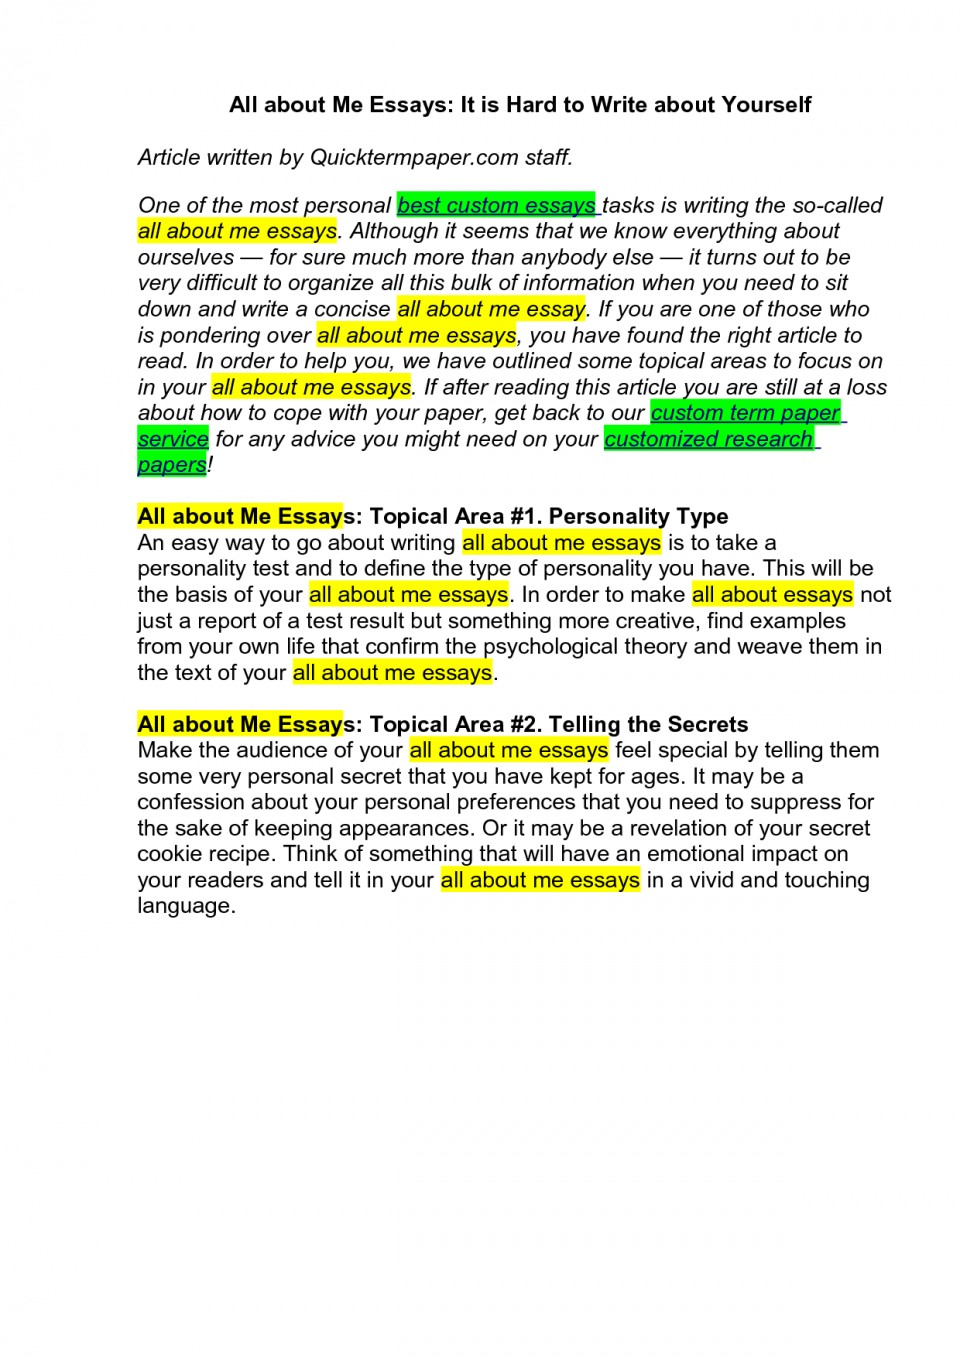 021 Essay Example How To Start An Amazing Argumentative About A Book With Definition Your Life 960